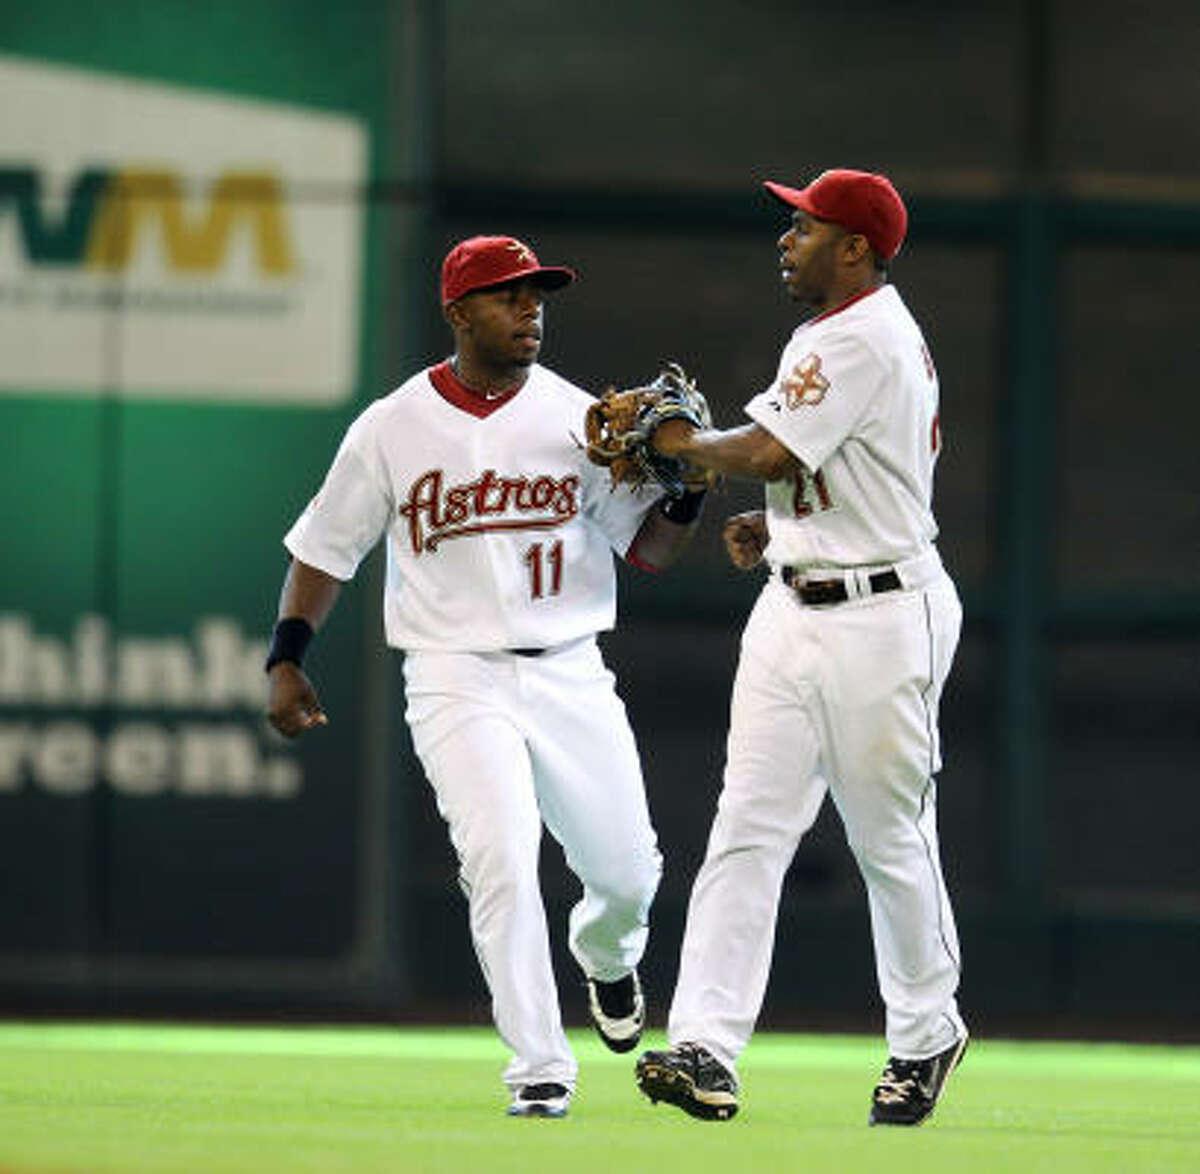 June 24: Astros 7, Giants 5 Astros' outfielders Michael Bourn, right, and Jason Bourgeois celebrate the Astros win over the Giants.